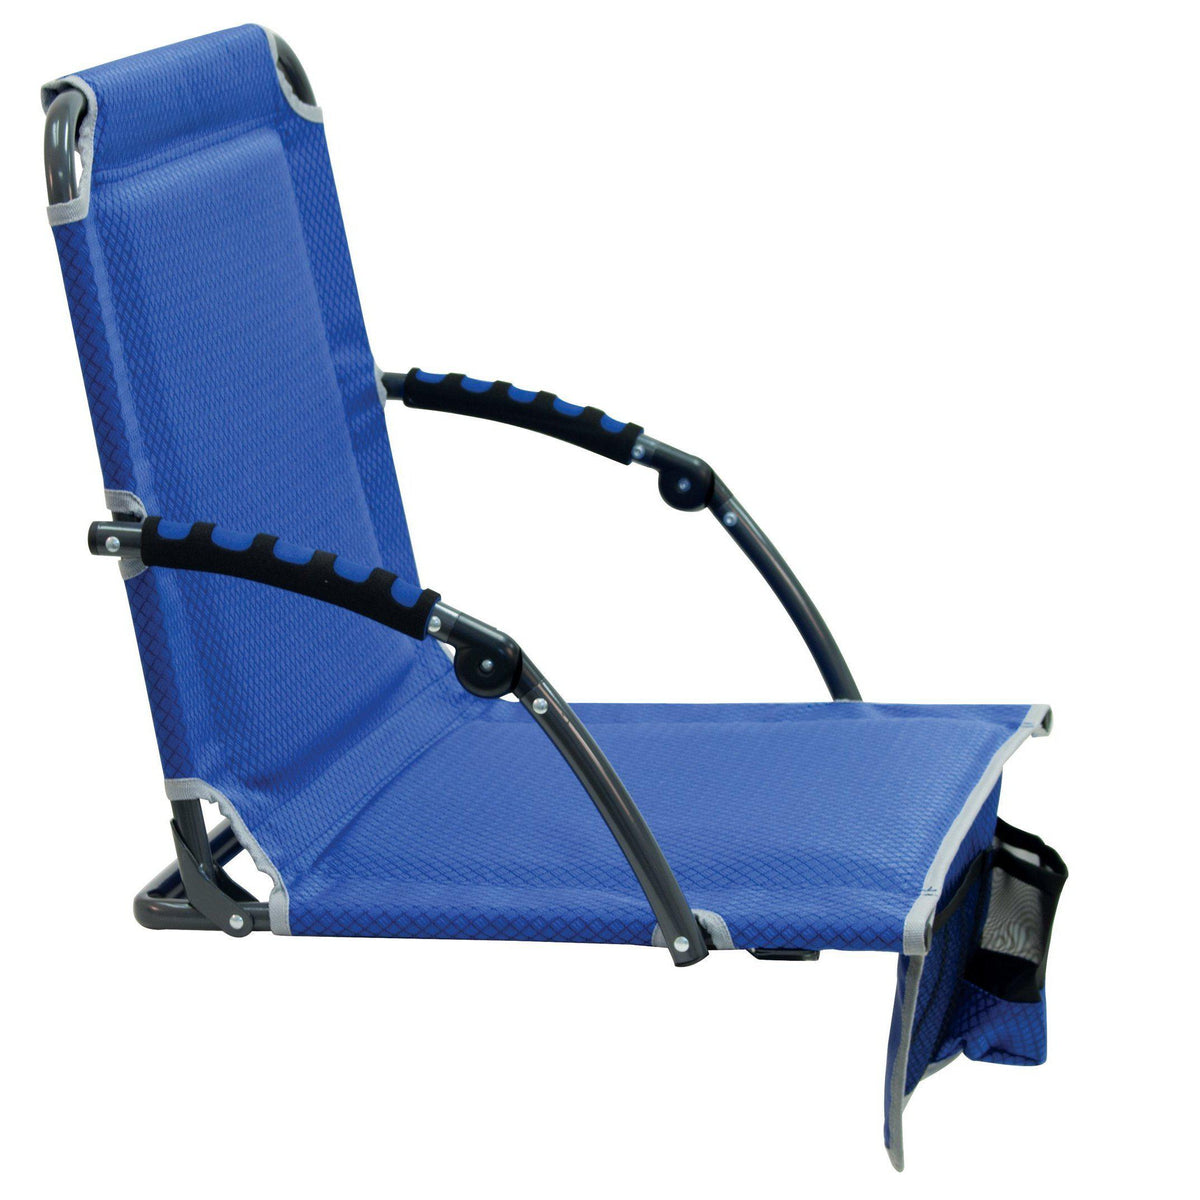 Rio Adventure Bleacher Boss Stadium Chair with Wrapped Arms